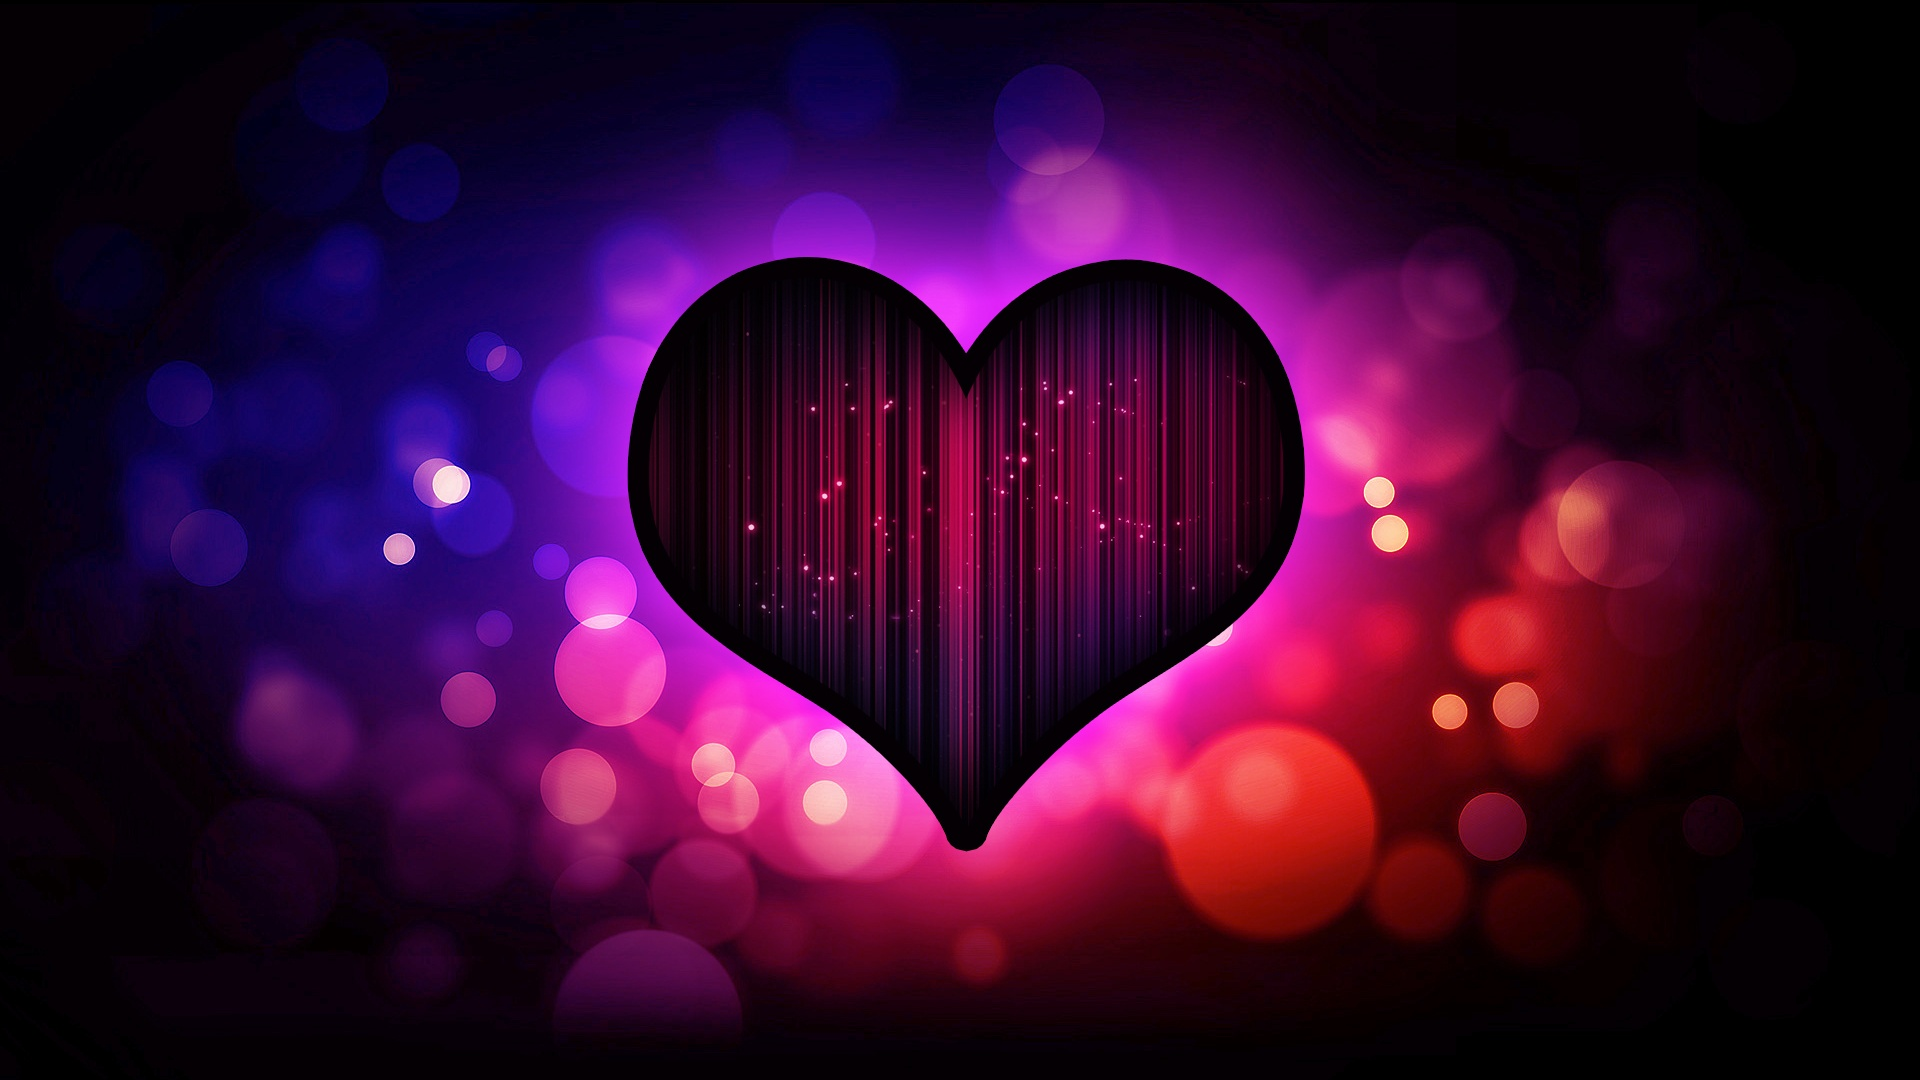 Love Wallpaper New 2014 : Abstract Love Heart Backgrounds #4266 Wallpaper ...